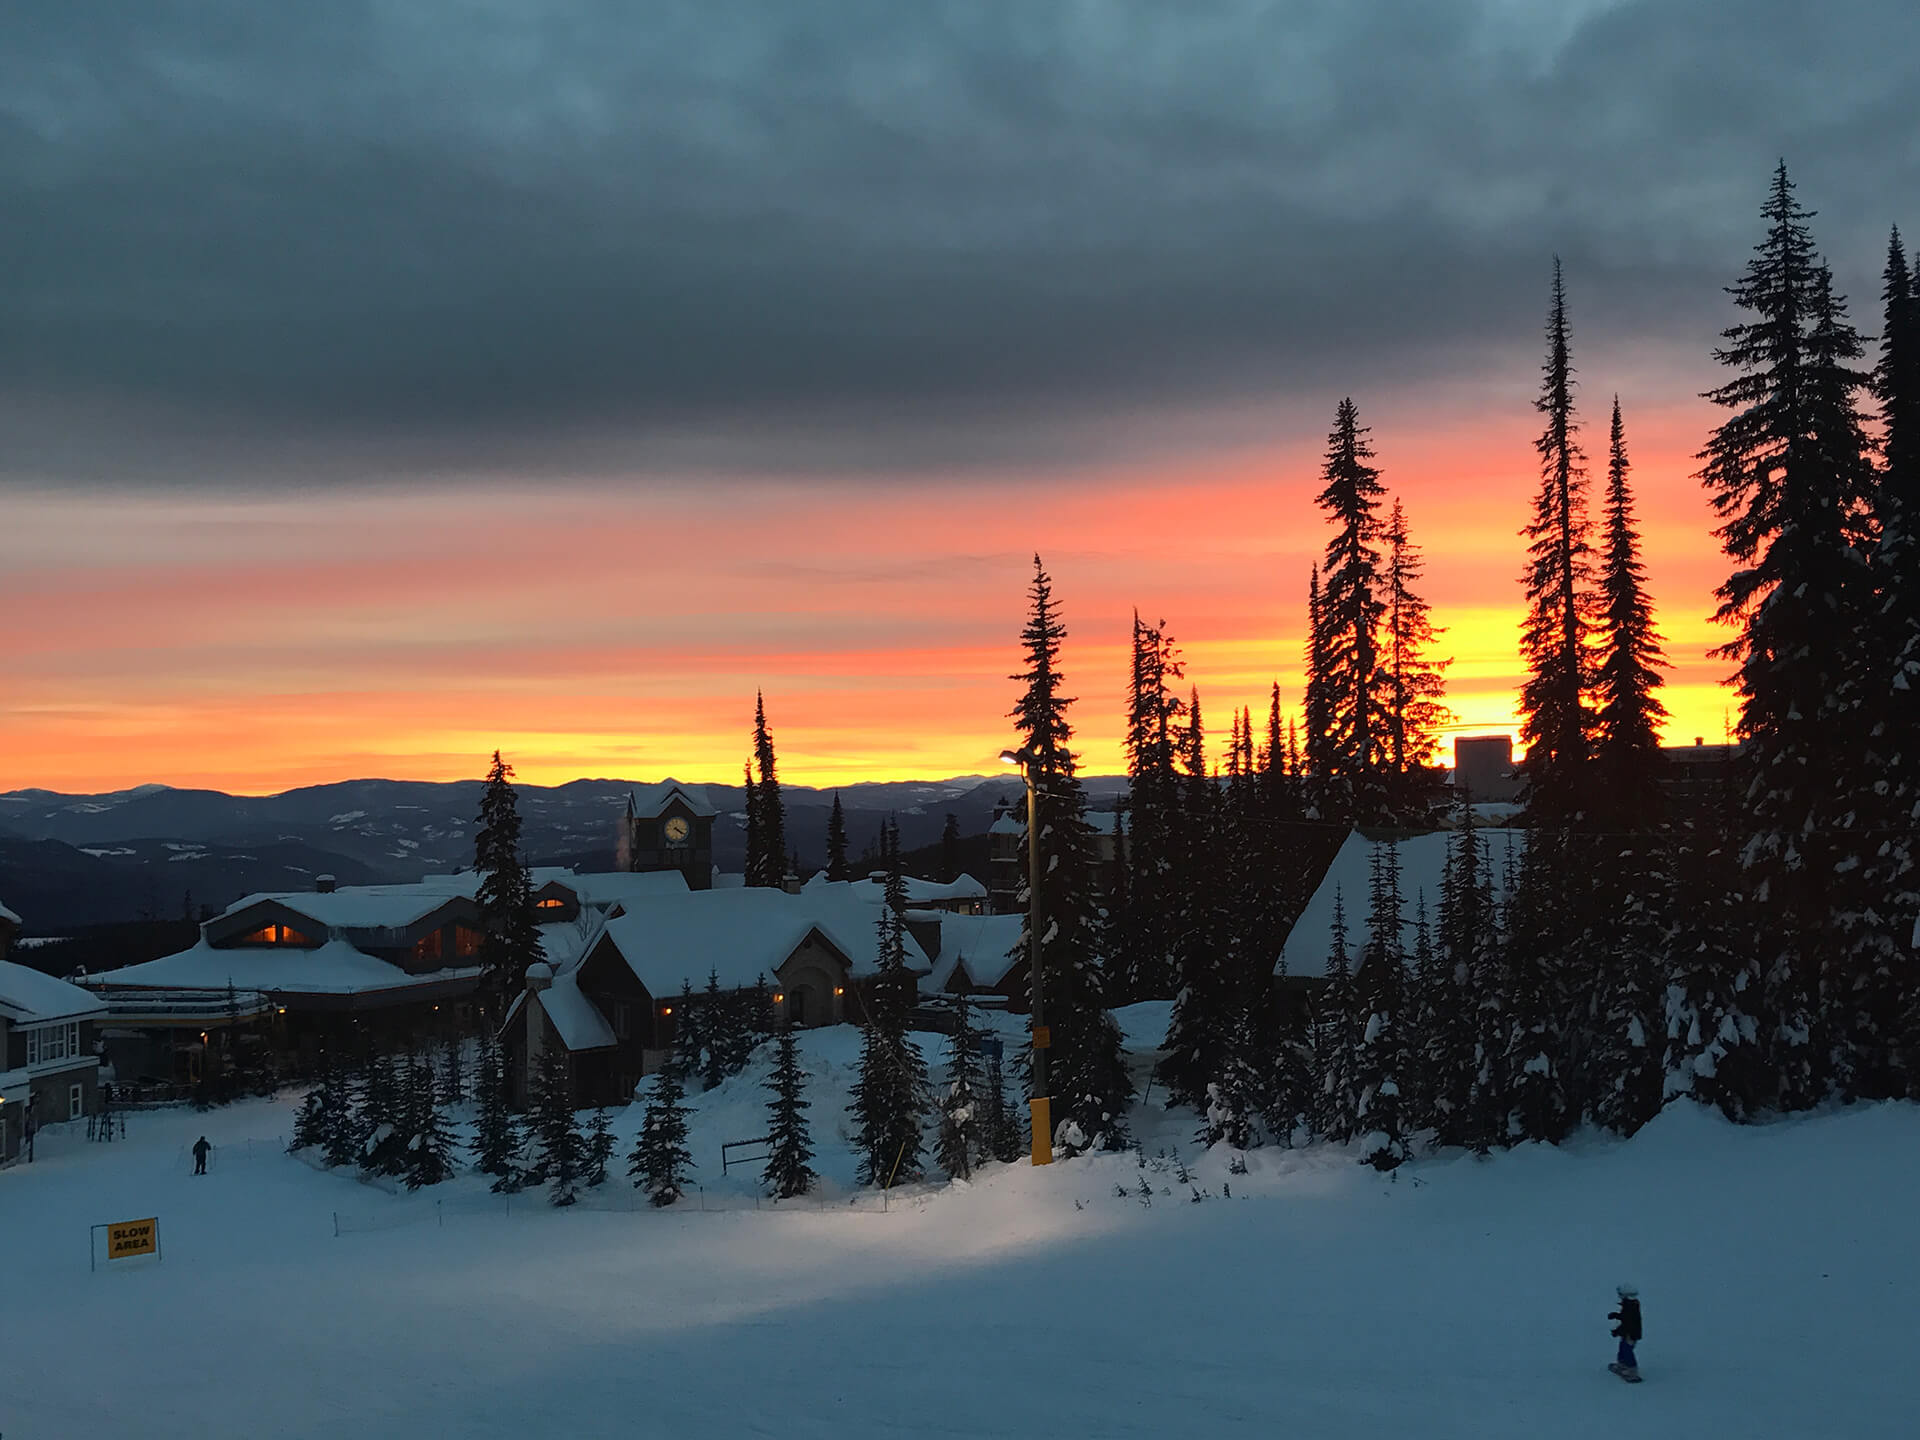 Sunset from Stonebridge at Big White Ski Resort